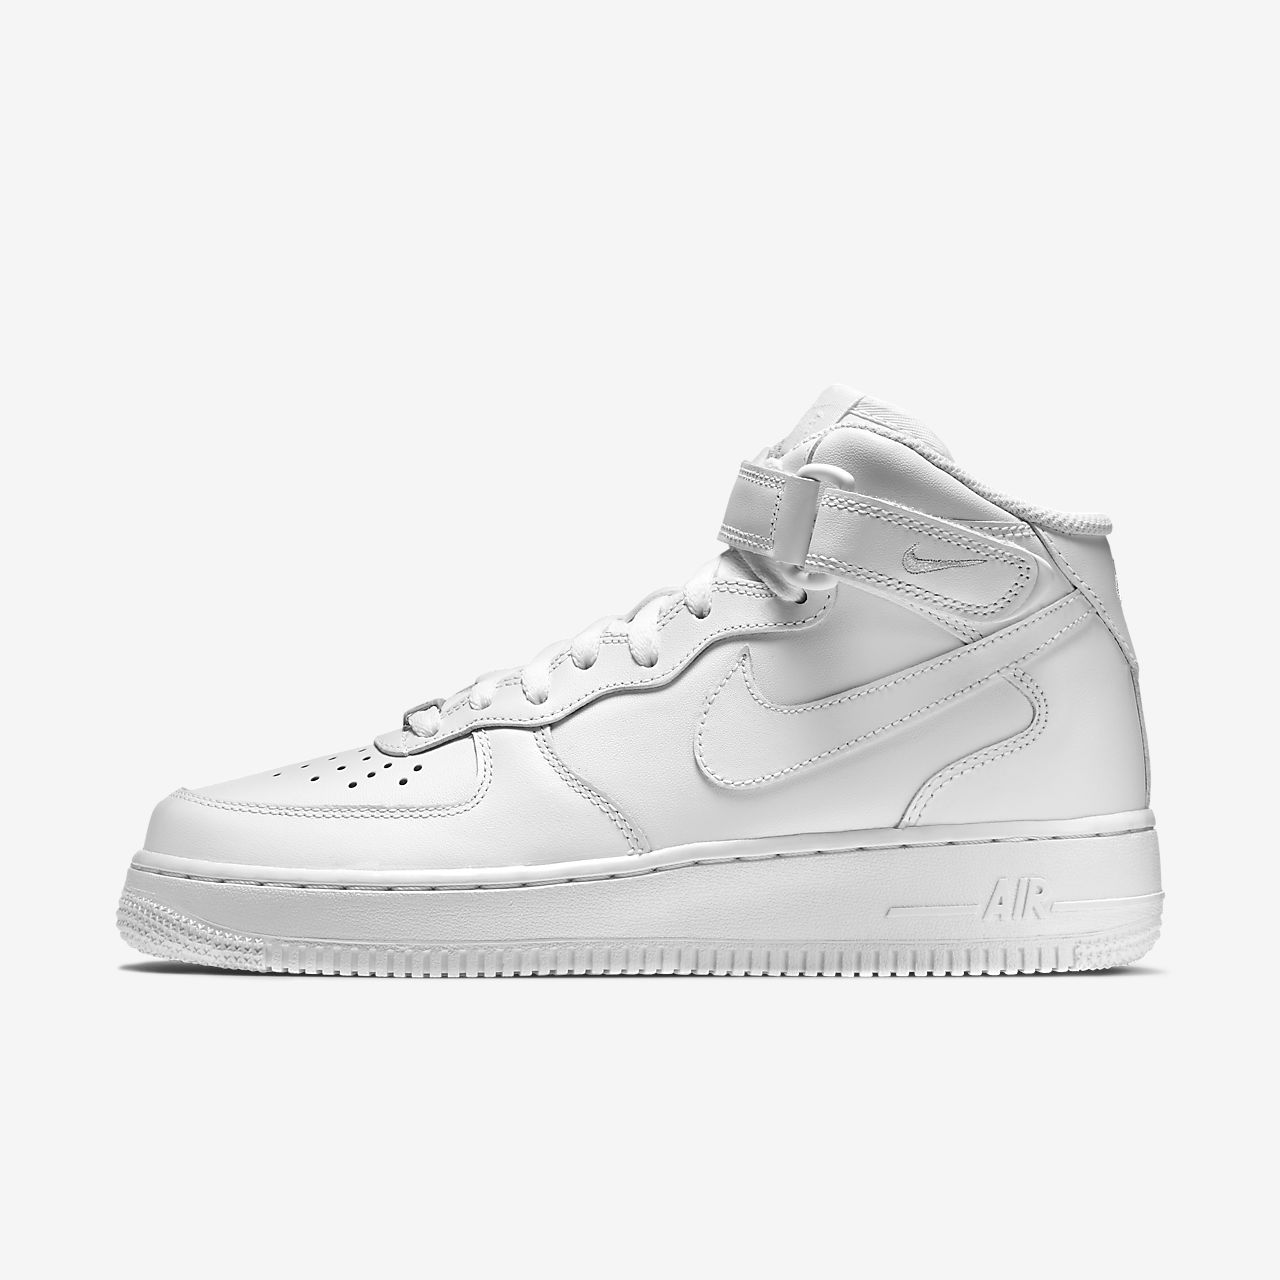 ... Nike Air Force 1 Mid \u002707 Women\u0027s Shoe